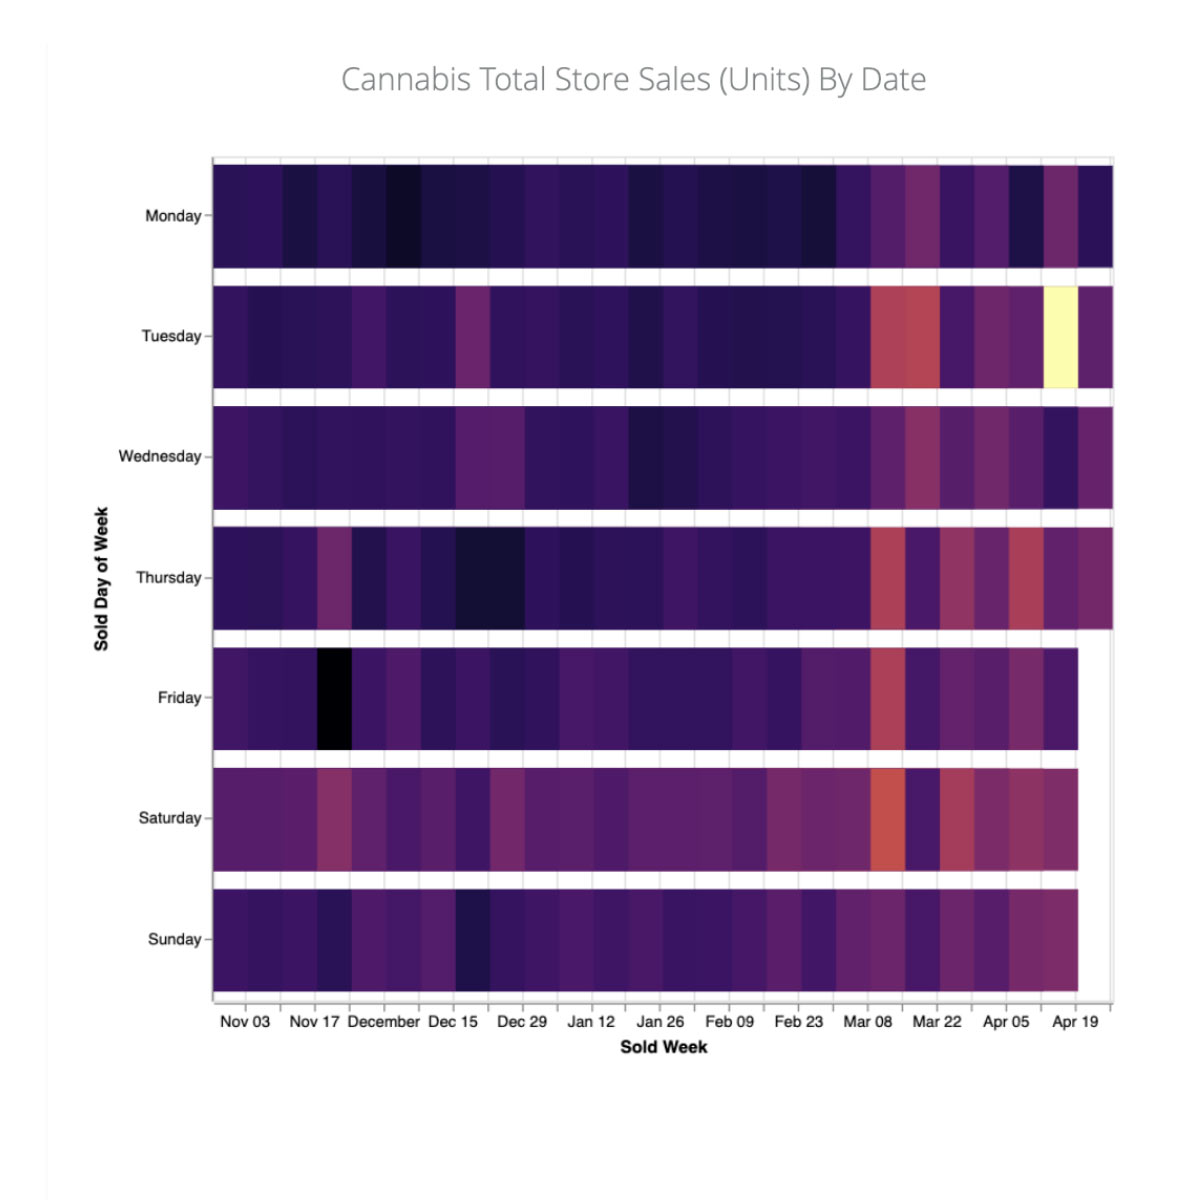 Cannabis total store sales by (units) by date